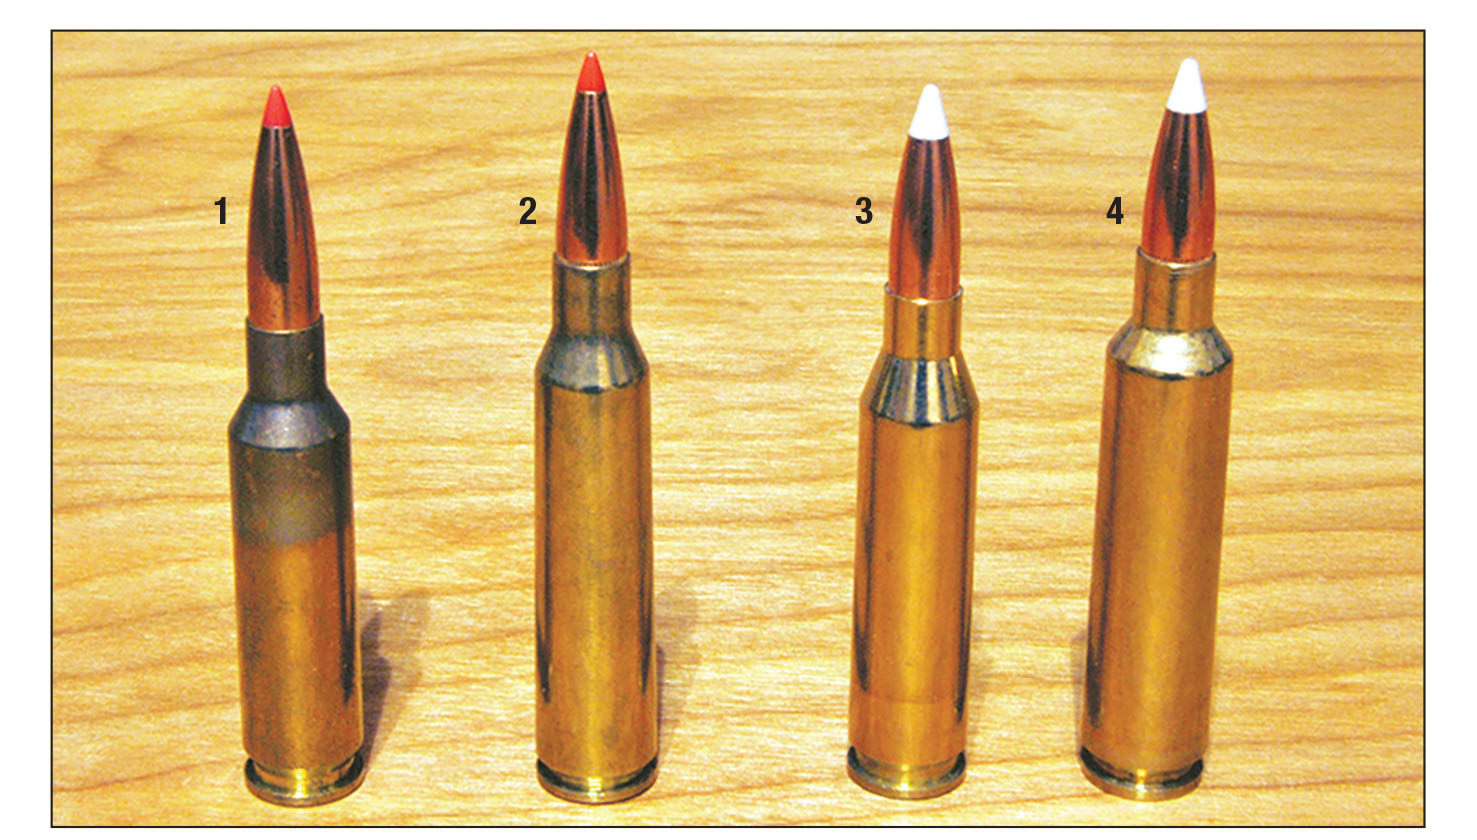 These similar cartridges include the (1) 6.5 Creedmoor, (2) 6.5x55 Mauser, (3) .260 Remington and the (4) 6.5-284 Norma.